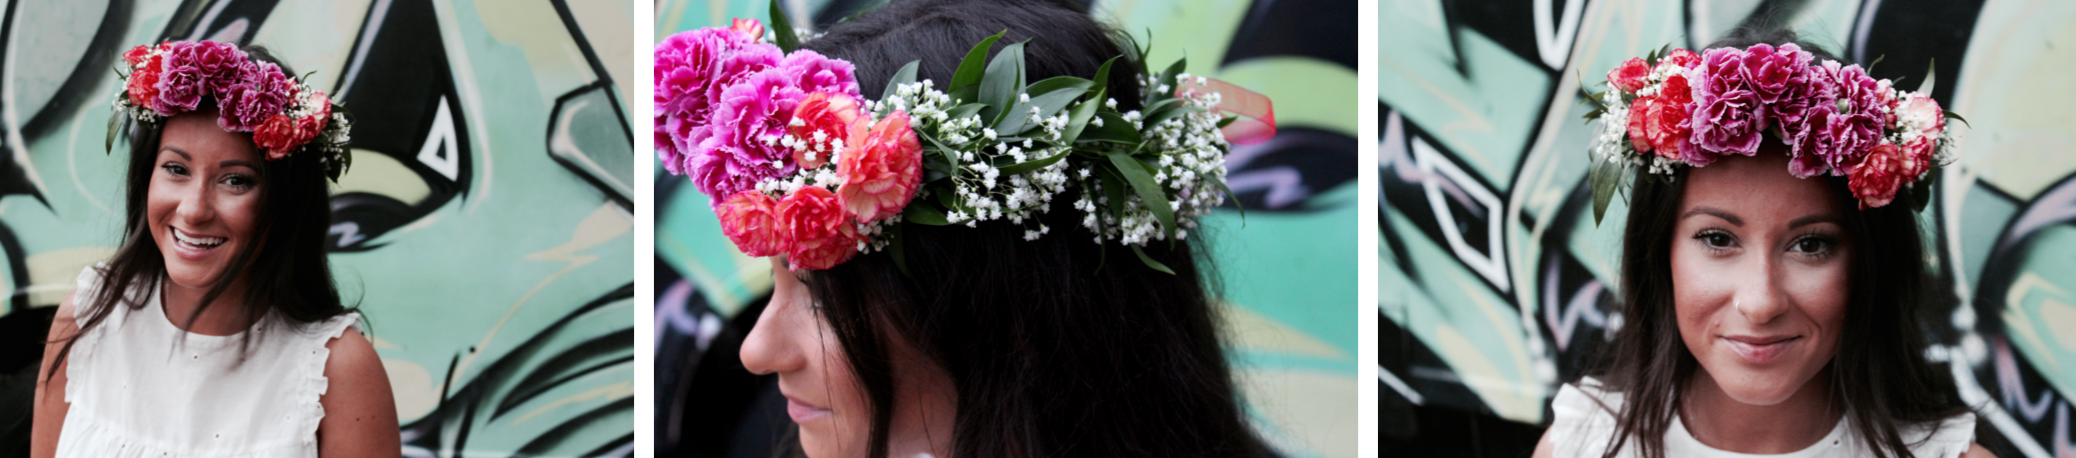 Floral crown workshop at the wynwood yard miami event planning izmirmasajfo